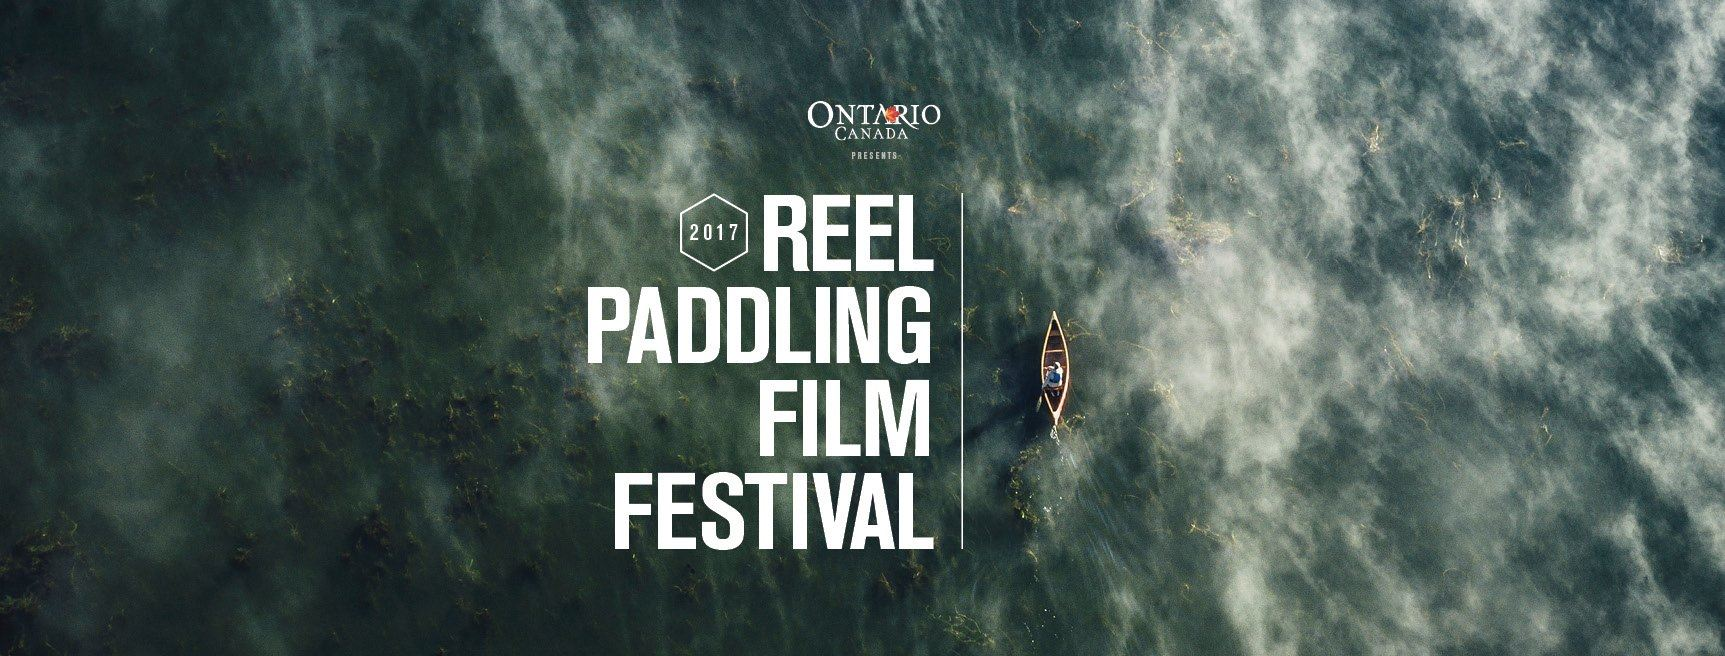 Reel Paddling Film Festival World Tour 2017 - Strömsbruk, Sweden